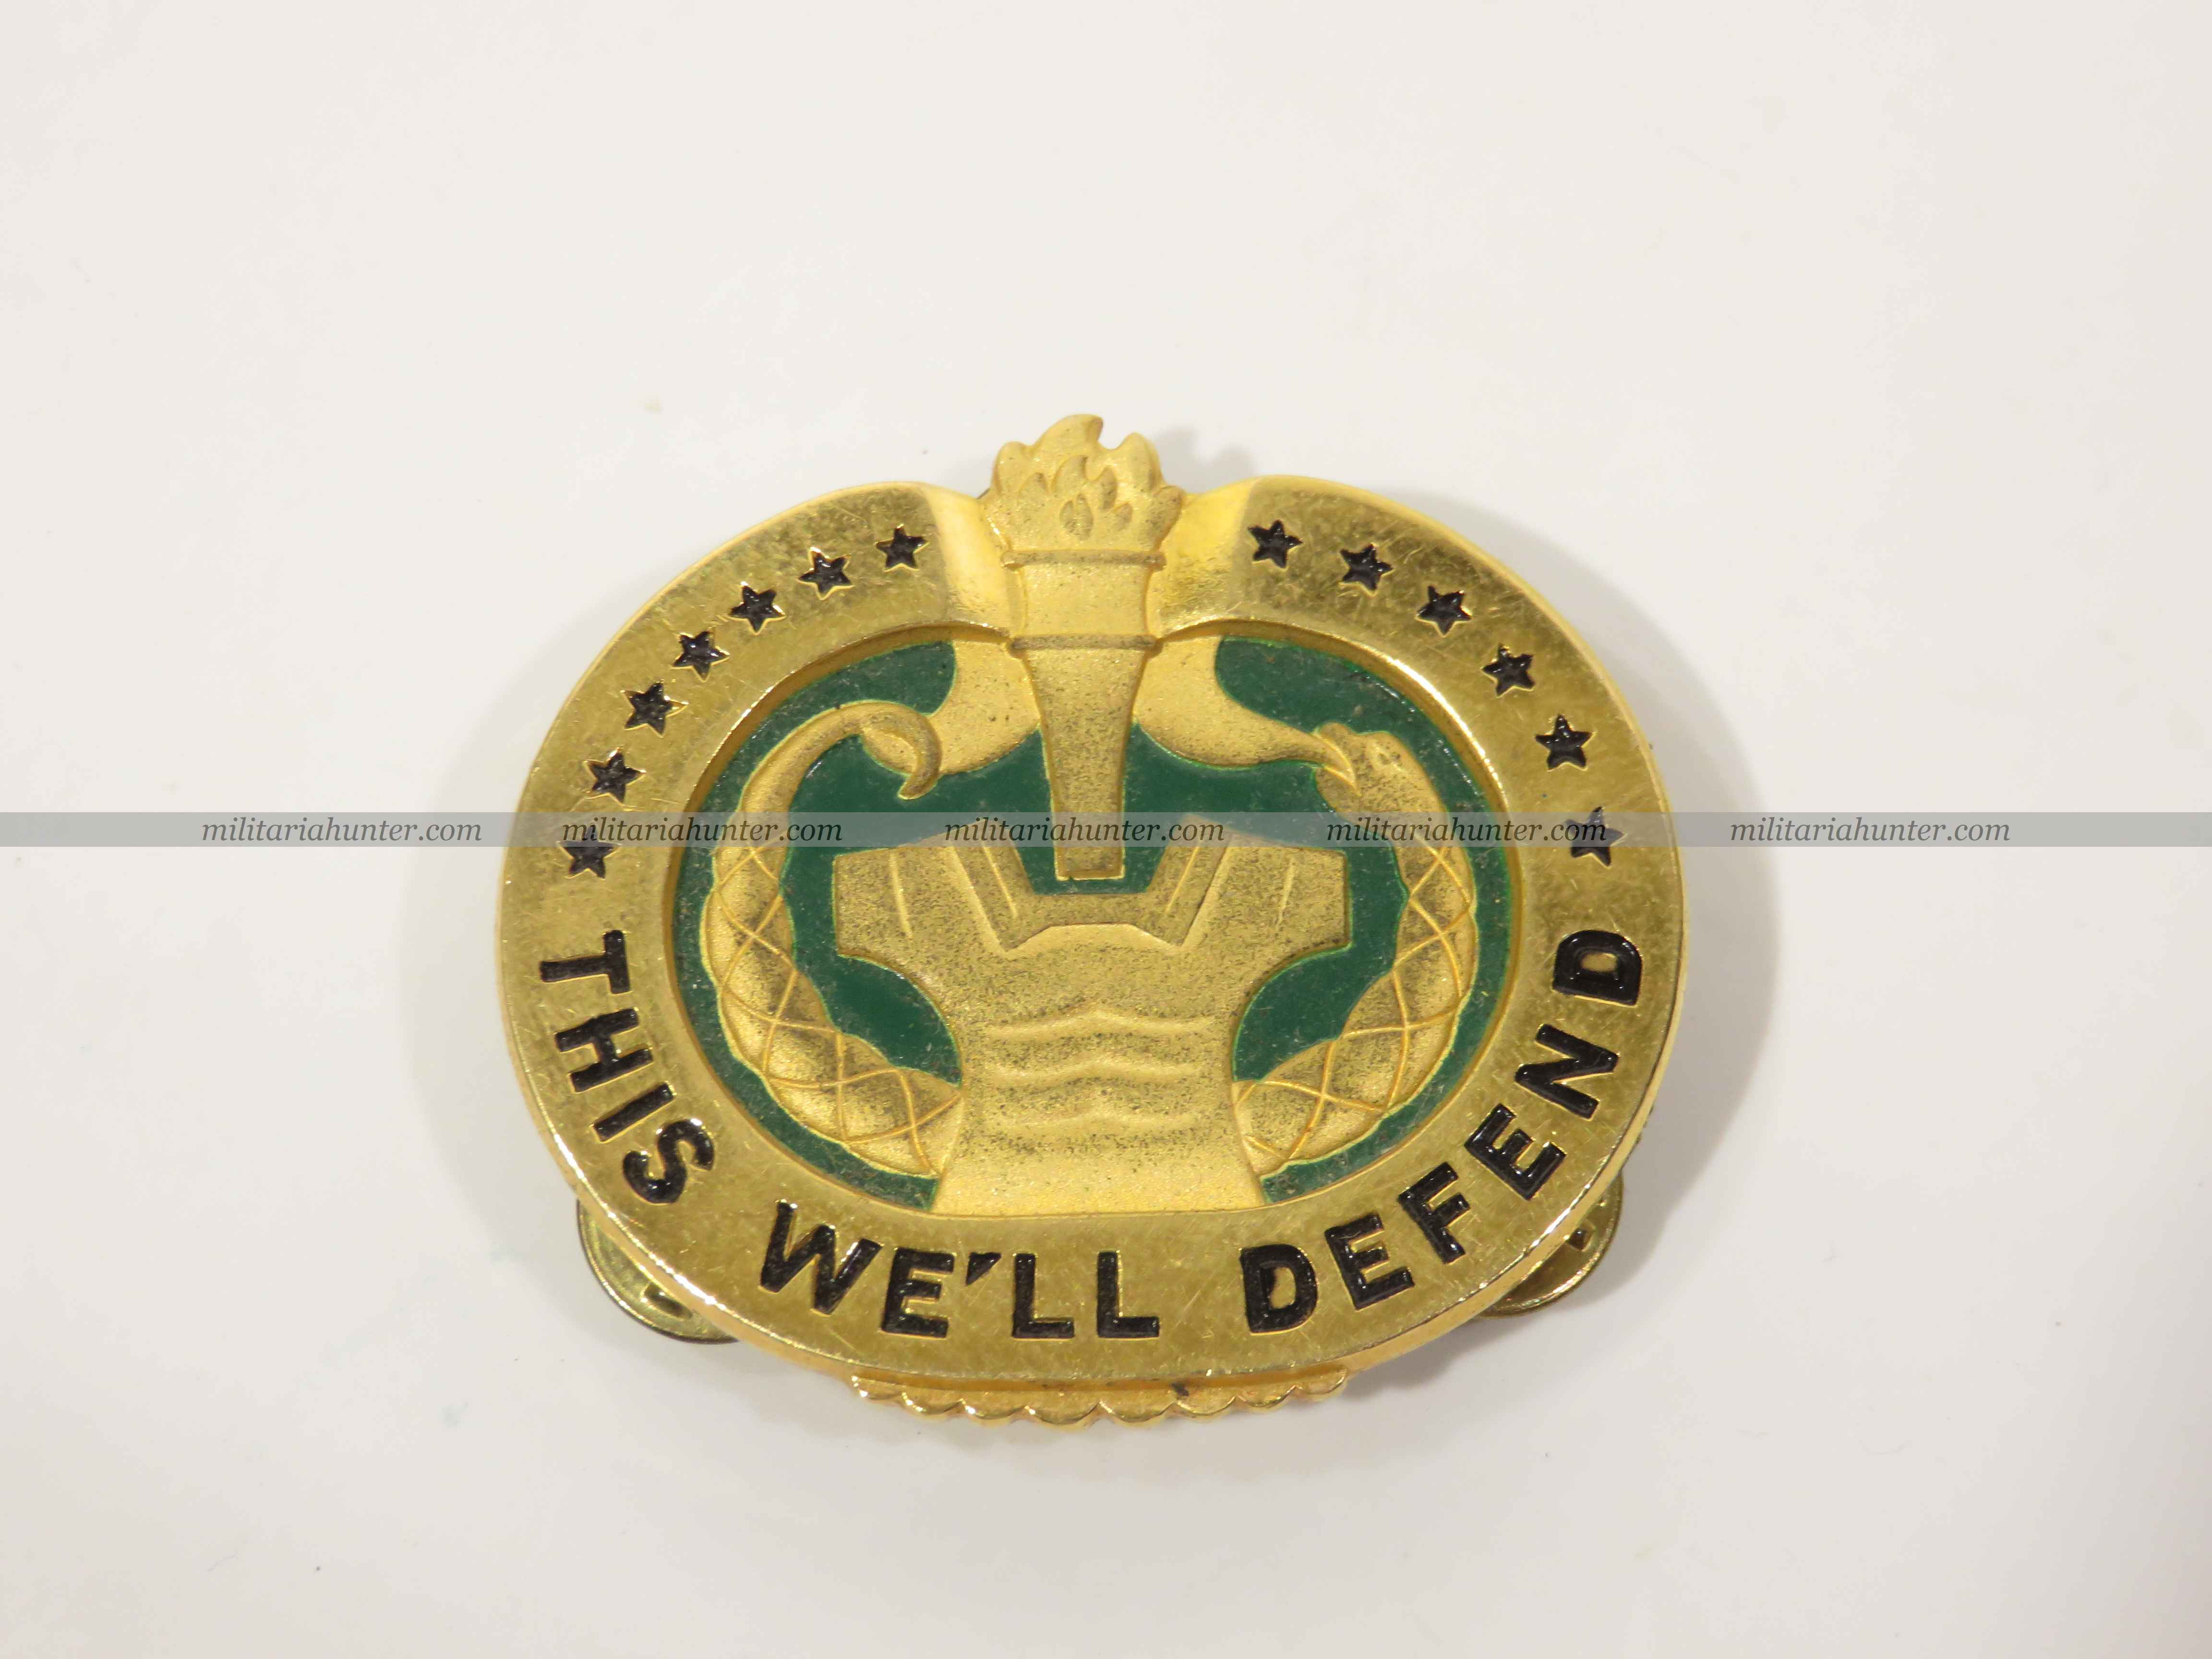 militaria : US Drill Sergeant Badge - badge de sergent instructeur